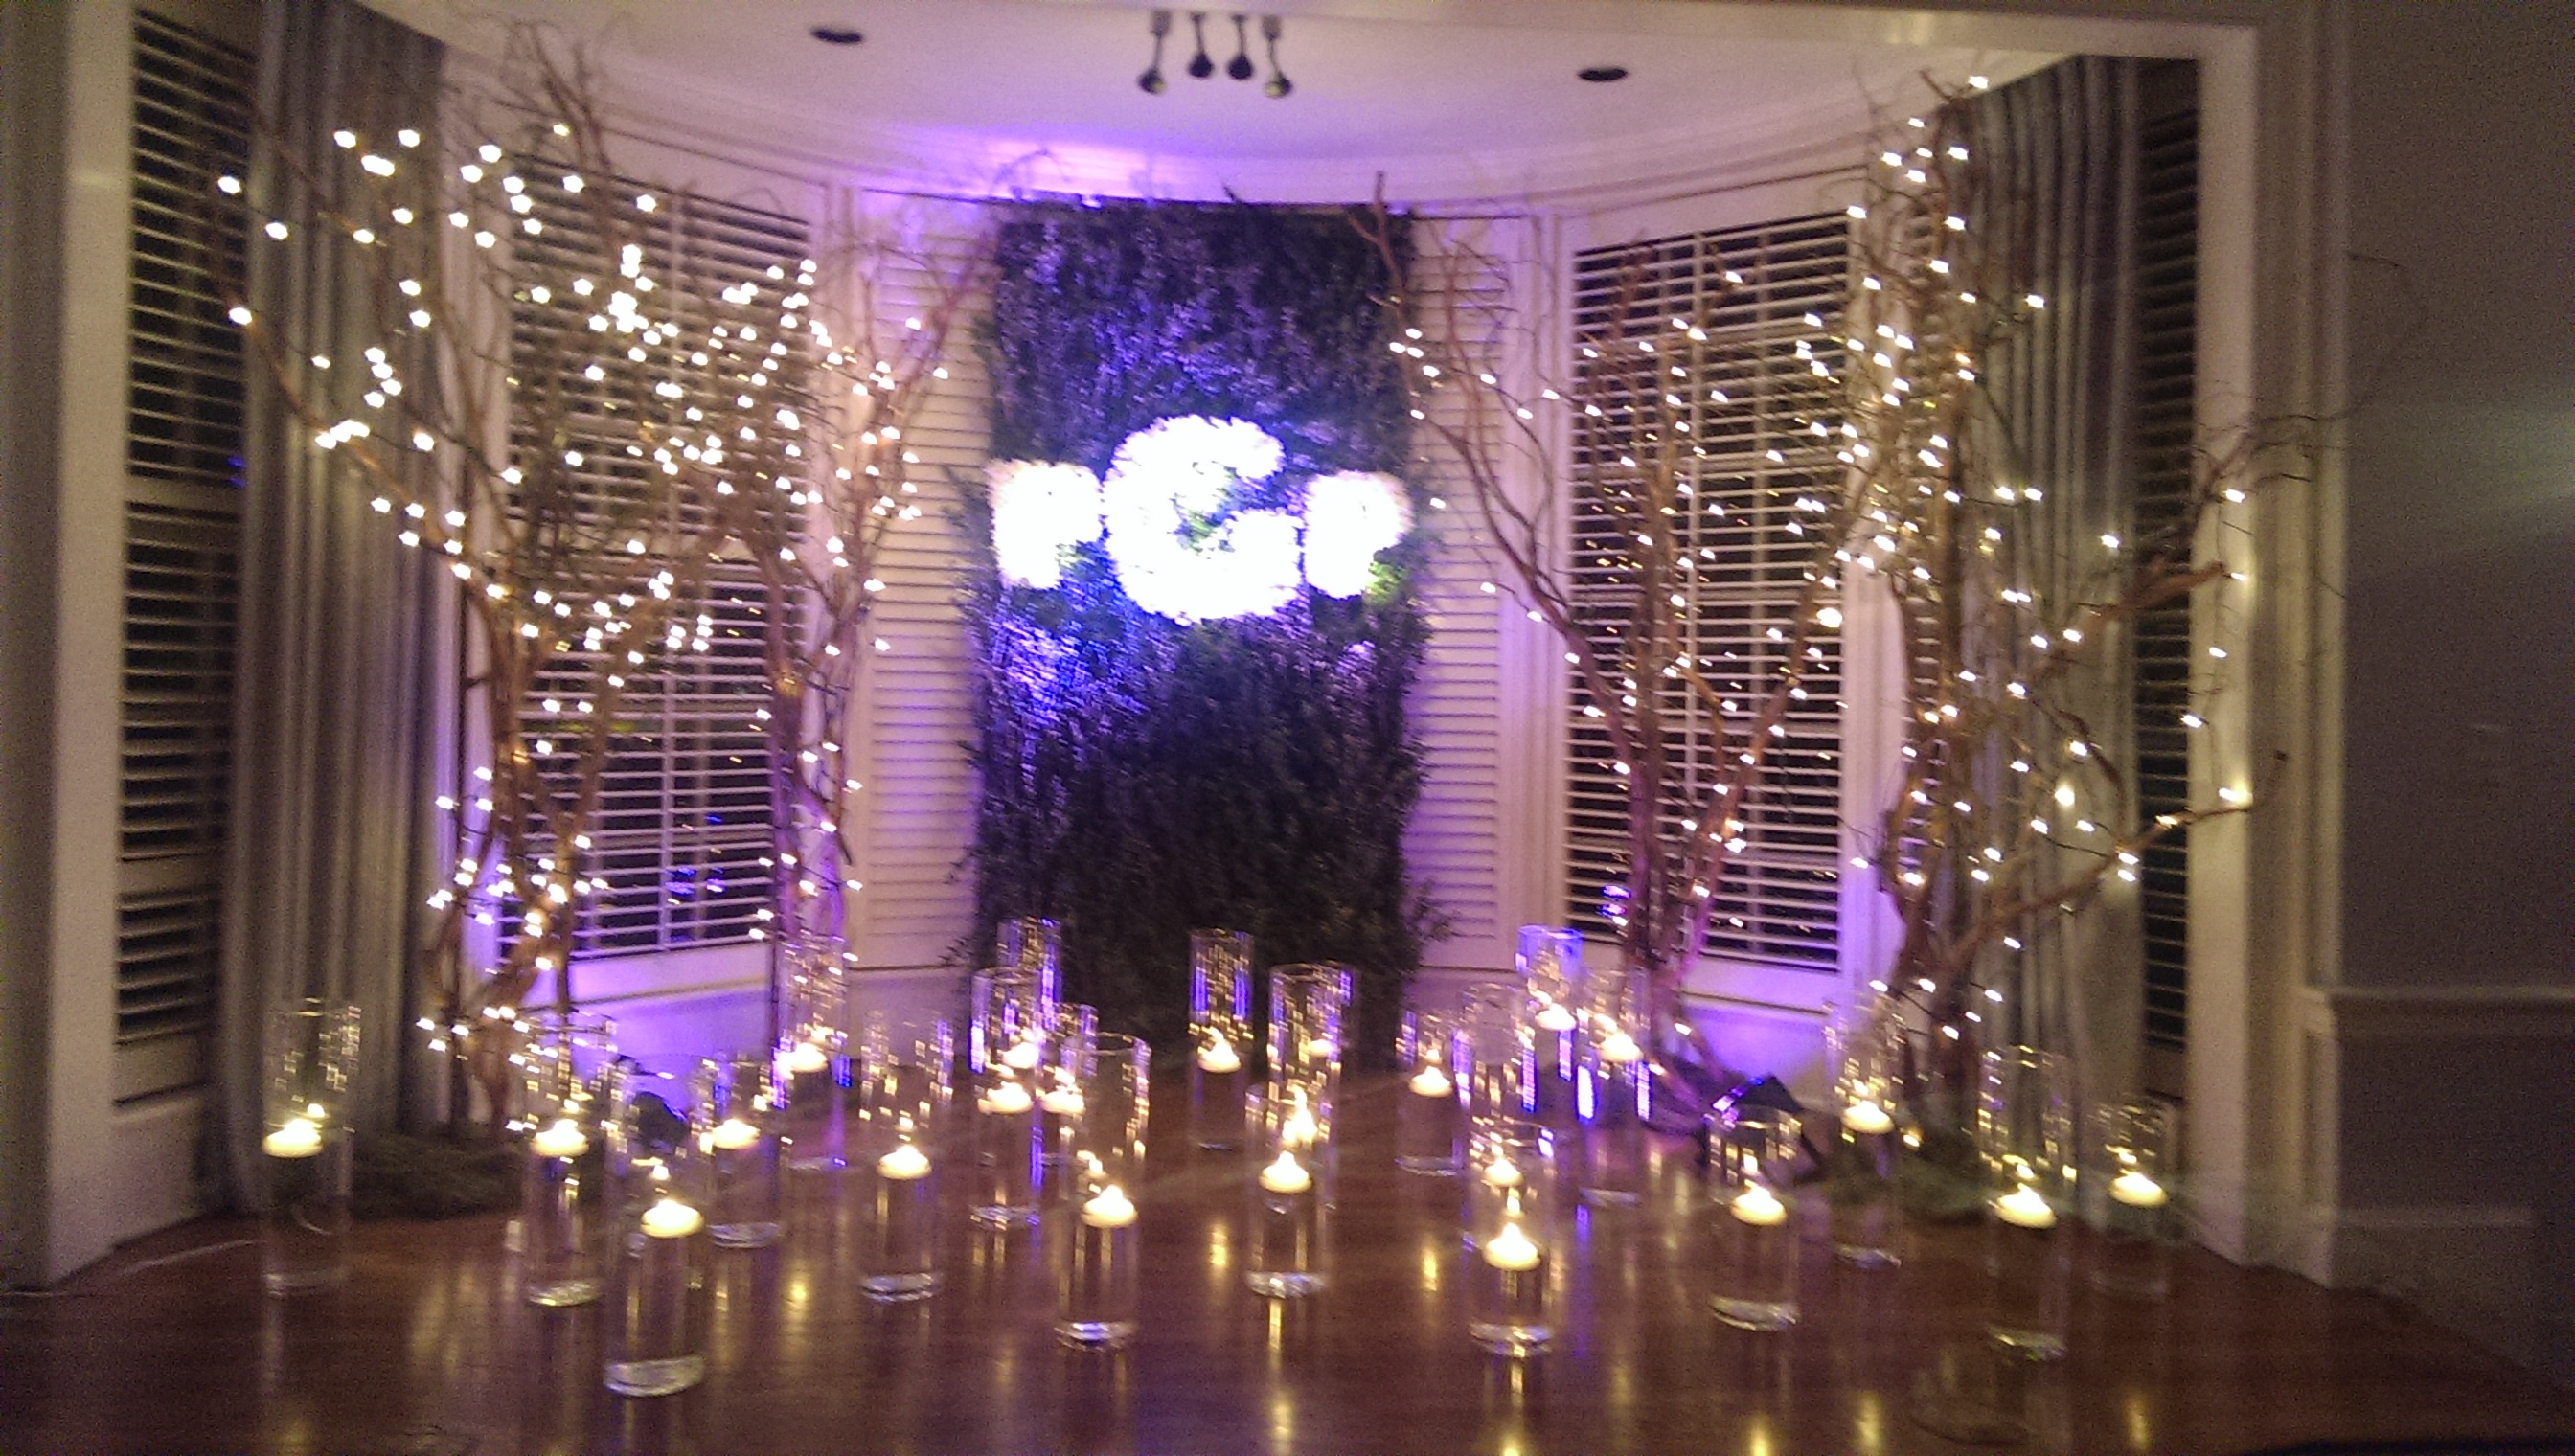 Fairytale reception gilded bow the brides monogram in lush greenery surrounded by beautiful tea lights in vases of water and reviewsmspy